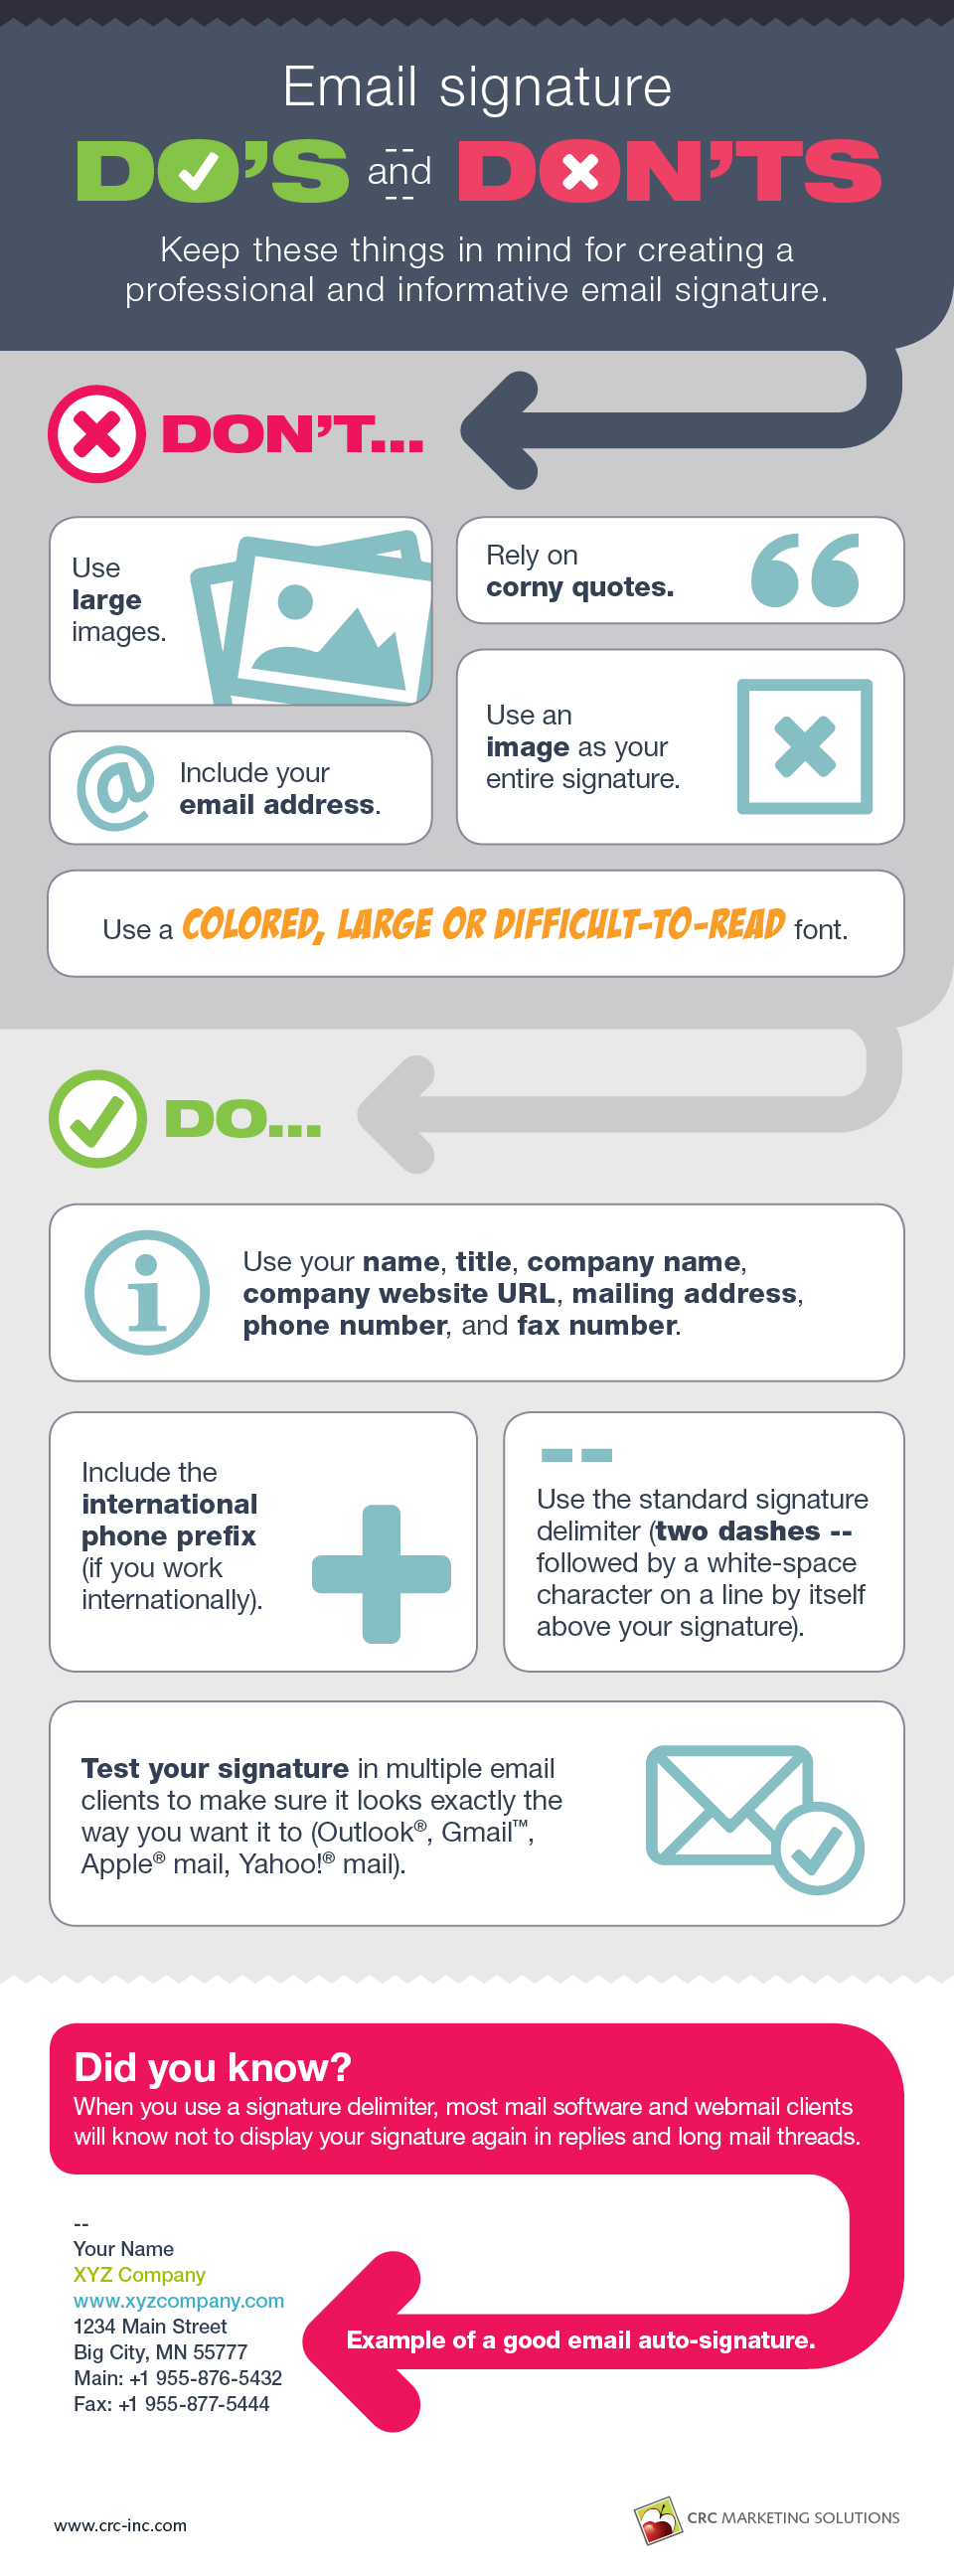 Email signature do's and don'ts infographic